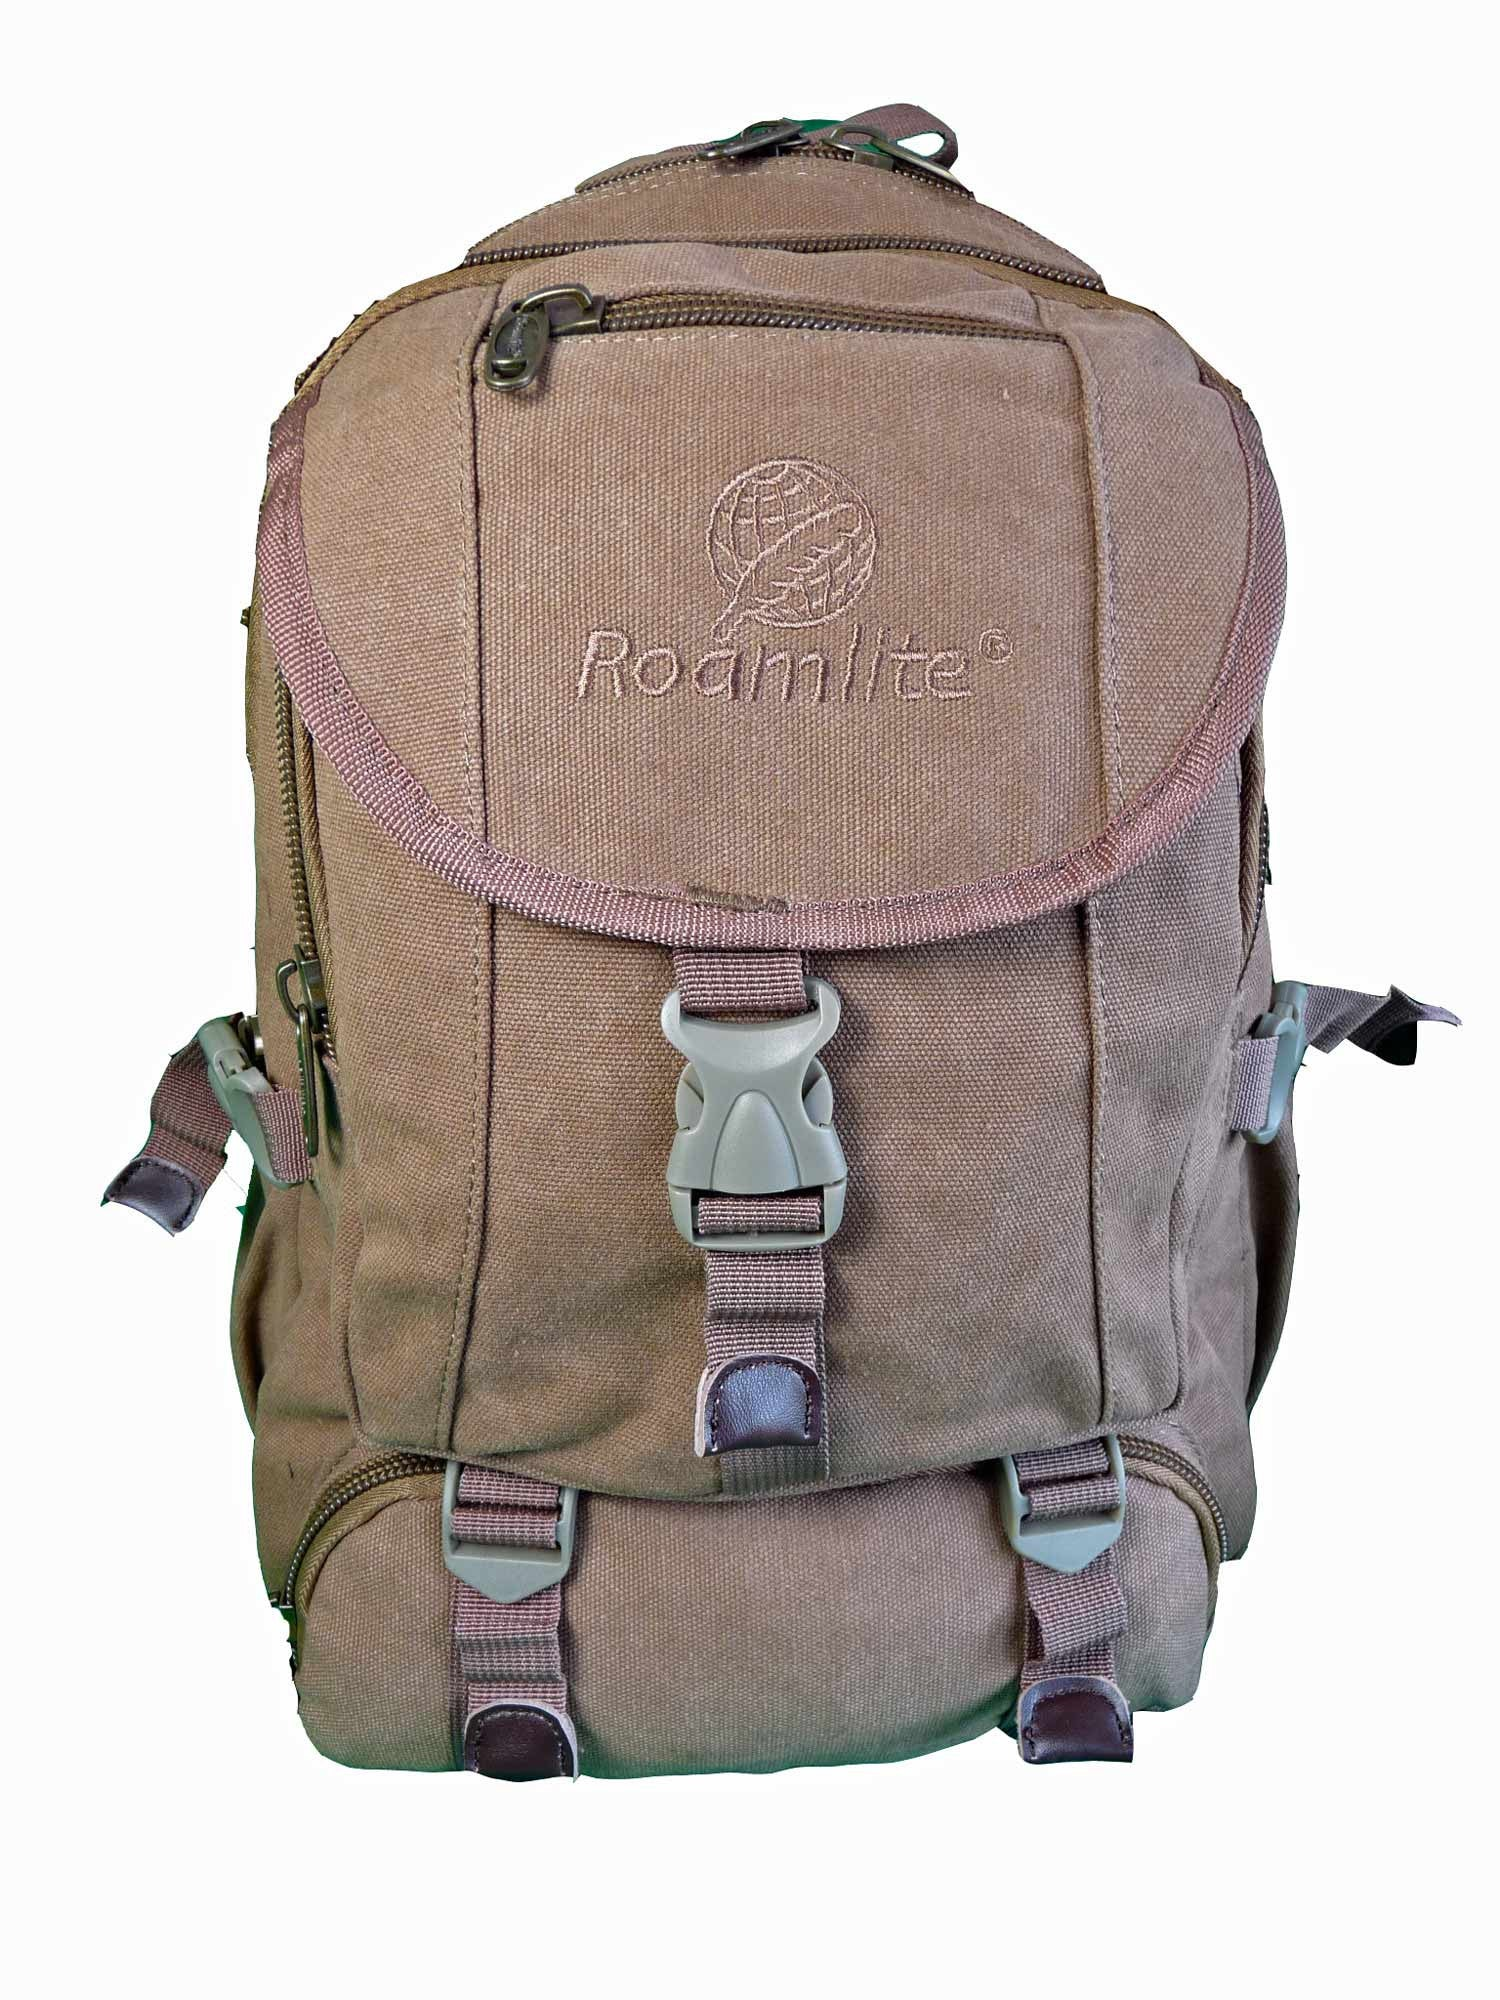 MacBook Air Backpack Rucksack Bag RL25B front view